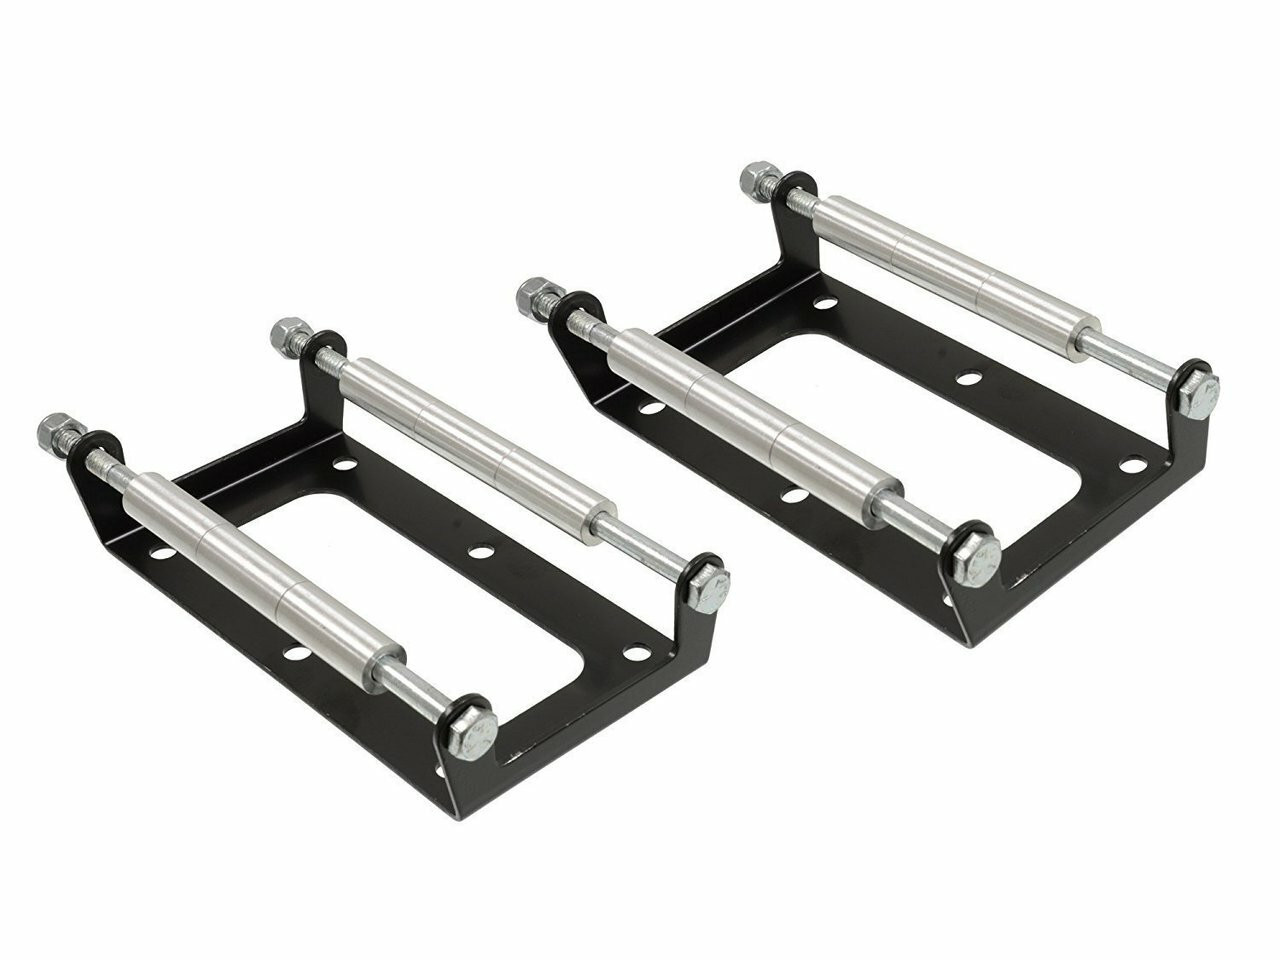 D510C LS2 LS3 LS4 LS7 LS9 Coil Pack Relocation Bracket mount and Coil Harness - Powdercoated Black